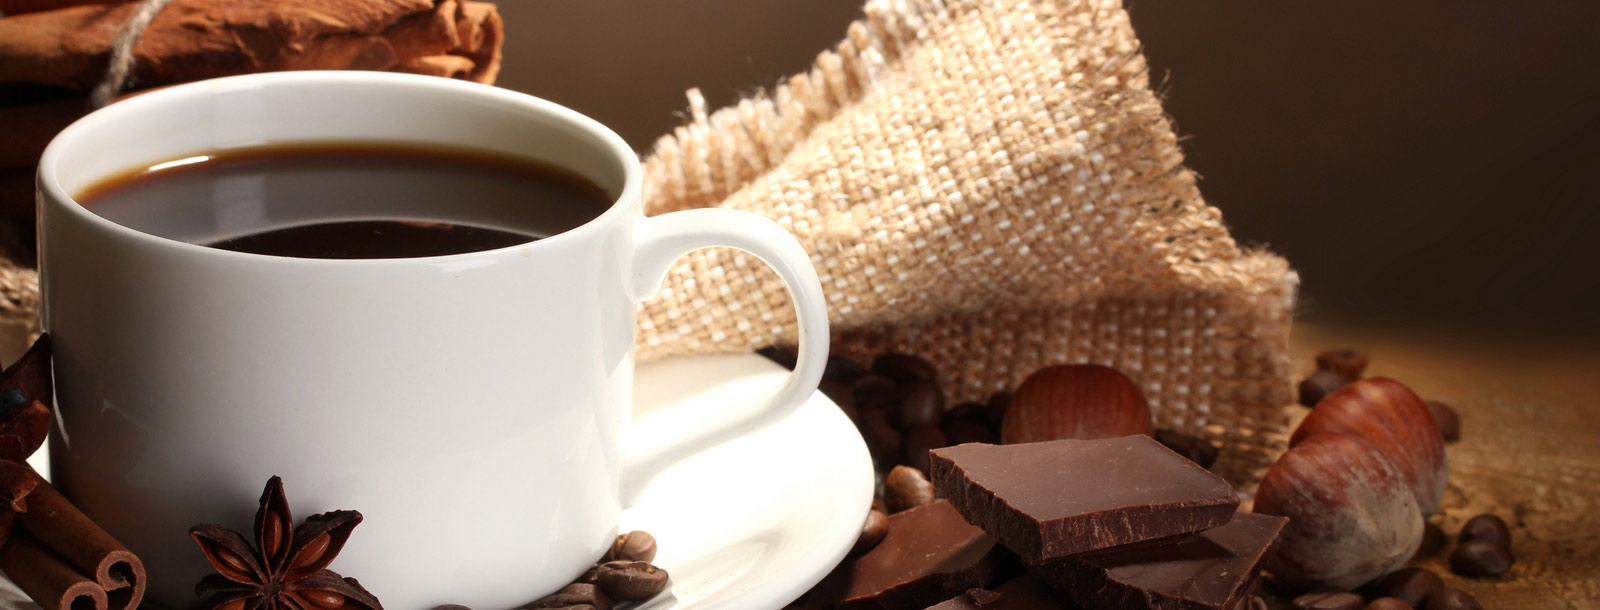 Cup-of-Coffee-Wallpaper_1600.jpg